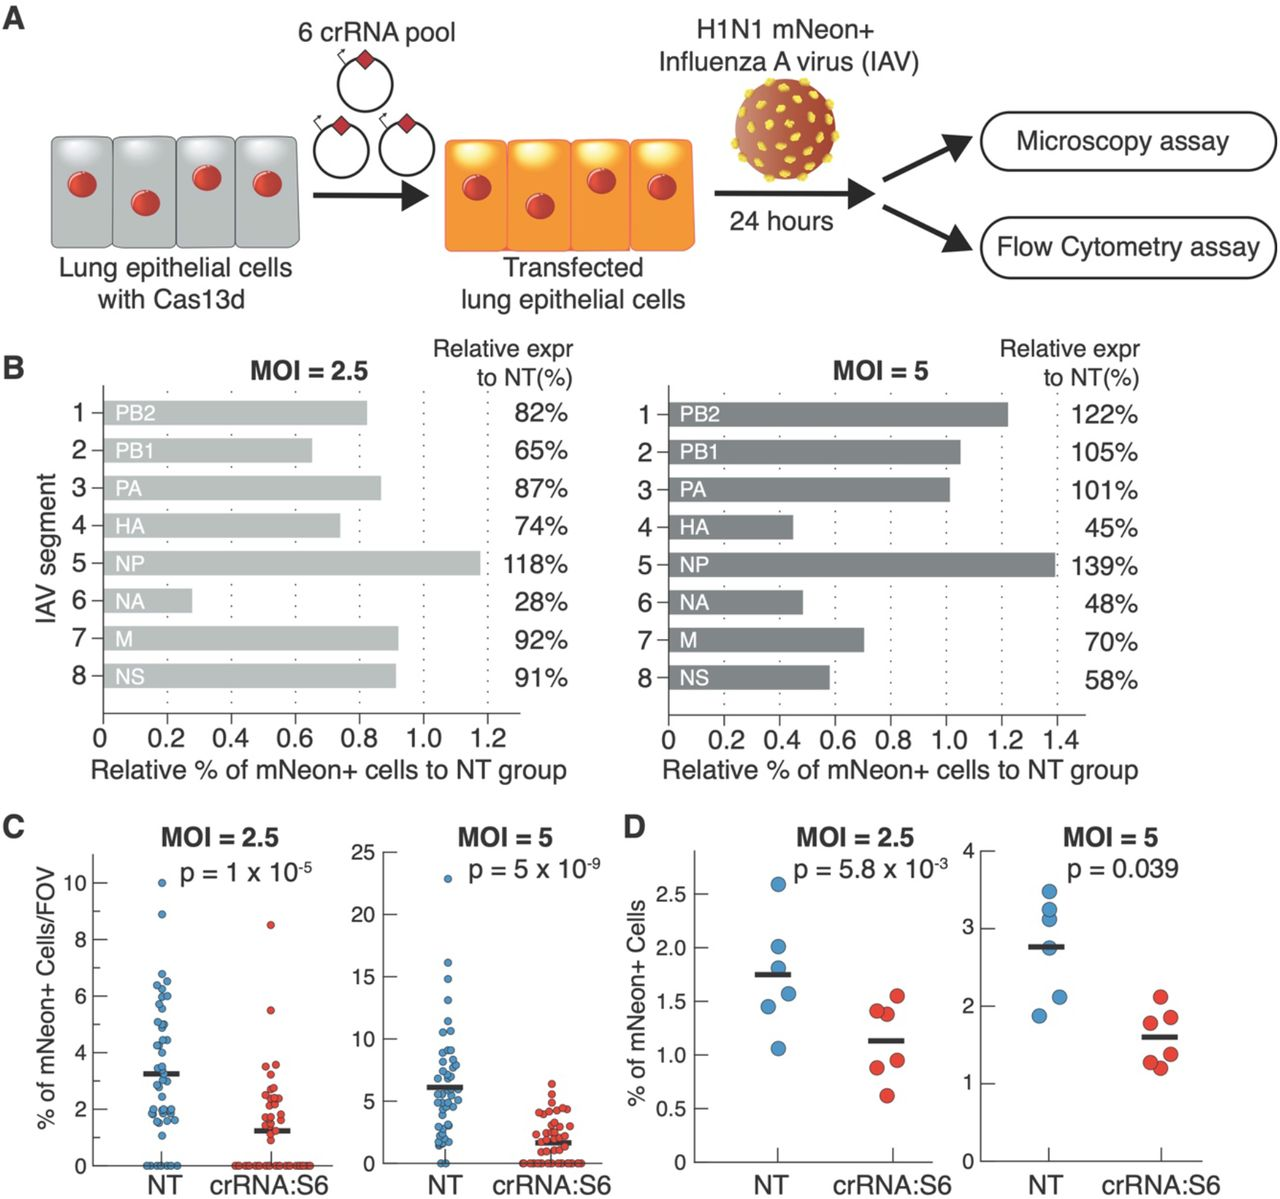 Inhibition of IAV infection using CRISPR PAC-MAN. (A) Workflow used to challenge Cas13d A549 lung epithelial cells with PR8 mNeon IAV. (B) Screen of pools of 6 crRNAs targeting each of the eight IAV genome segments. % of mNeon+ cells in each of the eight crRNA conditions are compared to a pool of non-targeting (NT) crRNAs at an MOI of 2.5 (left) or 5 (right). (C) Microscopy quantification of % of mNeon+ cells per field of view (FOV) at an MOI of 2.5 (p = 1×10 −5 , left) and 5 (p = 5×10 −9 , right). Each dot represents the % for a single microscopy FOV. N = 48 FOV. (D) Flow cytometry evaluation of % of mNeon+ cells at an MOI of 2.5 (p = 0.04, left) and 5 (p = 0.006, right). N = 6 biological samples.